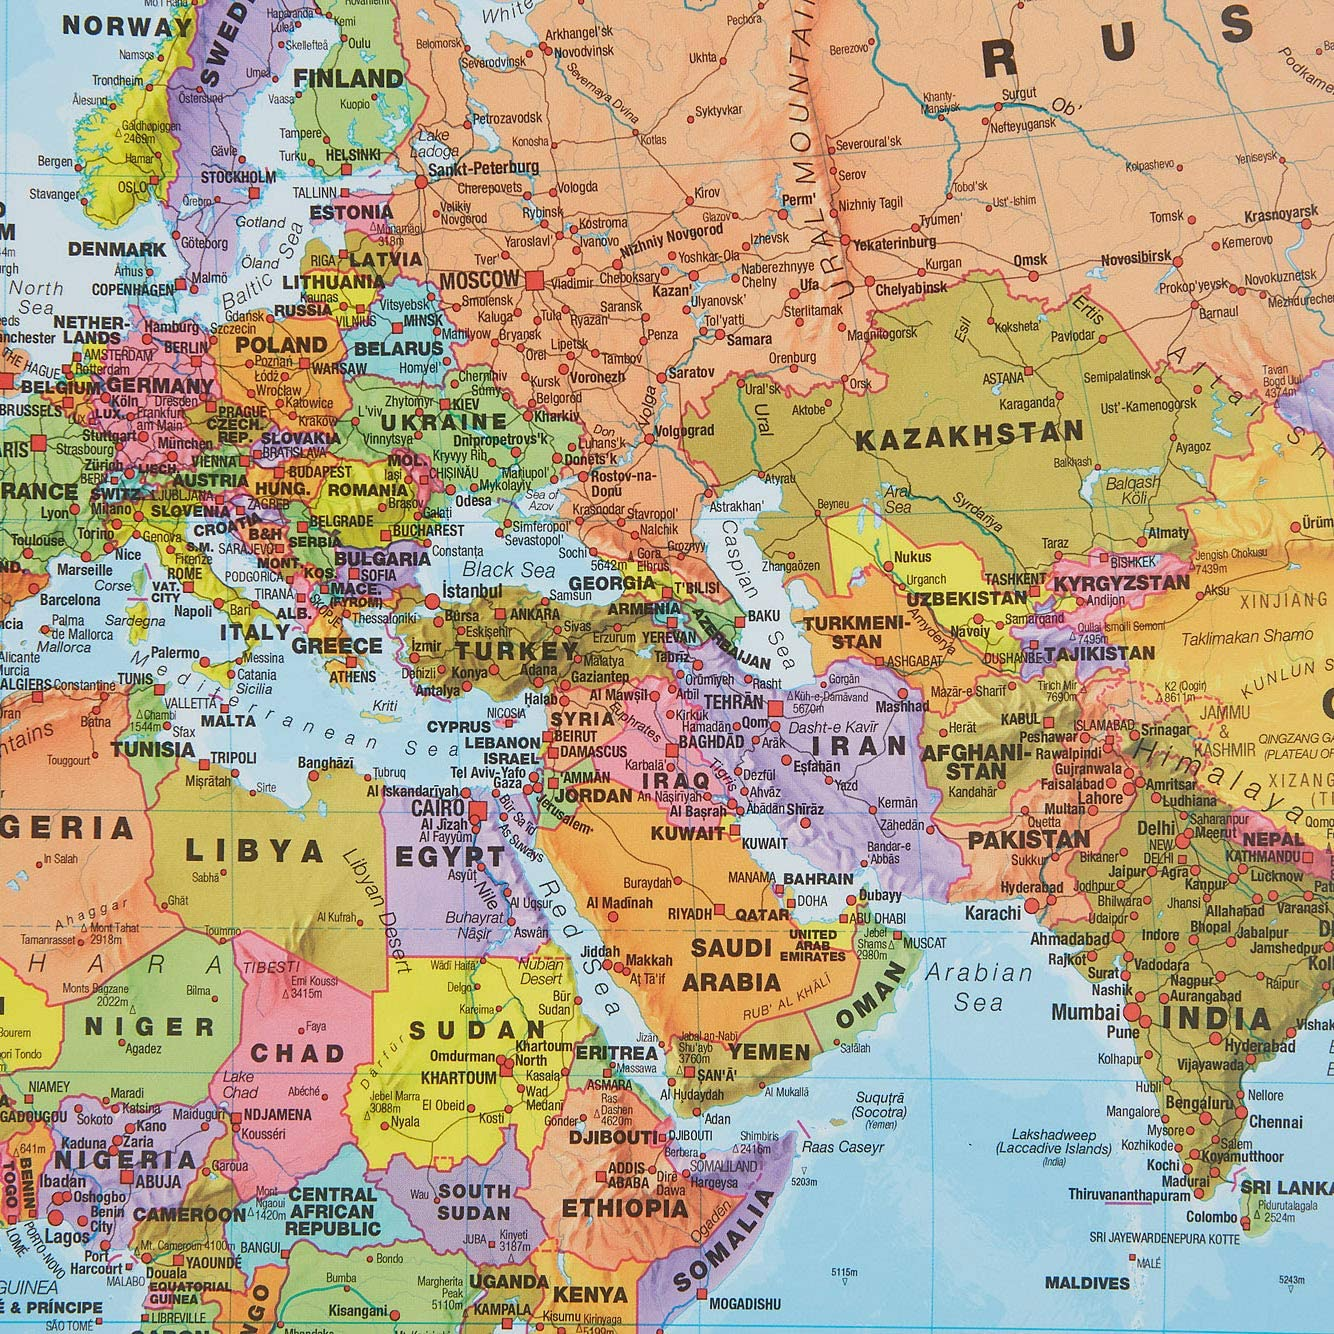 h x 59.4cm w Laminated 84.1cm Maps International World Map with Flags